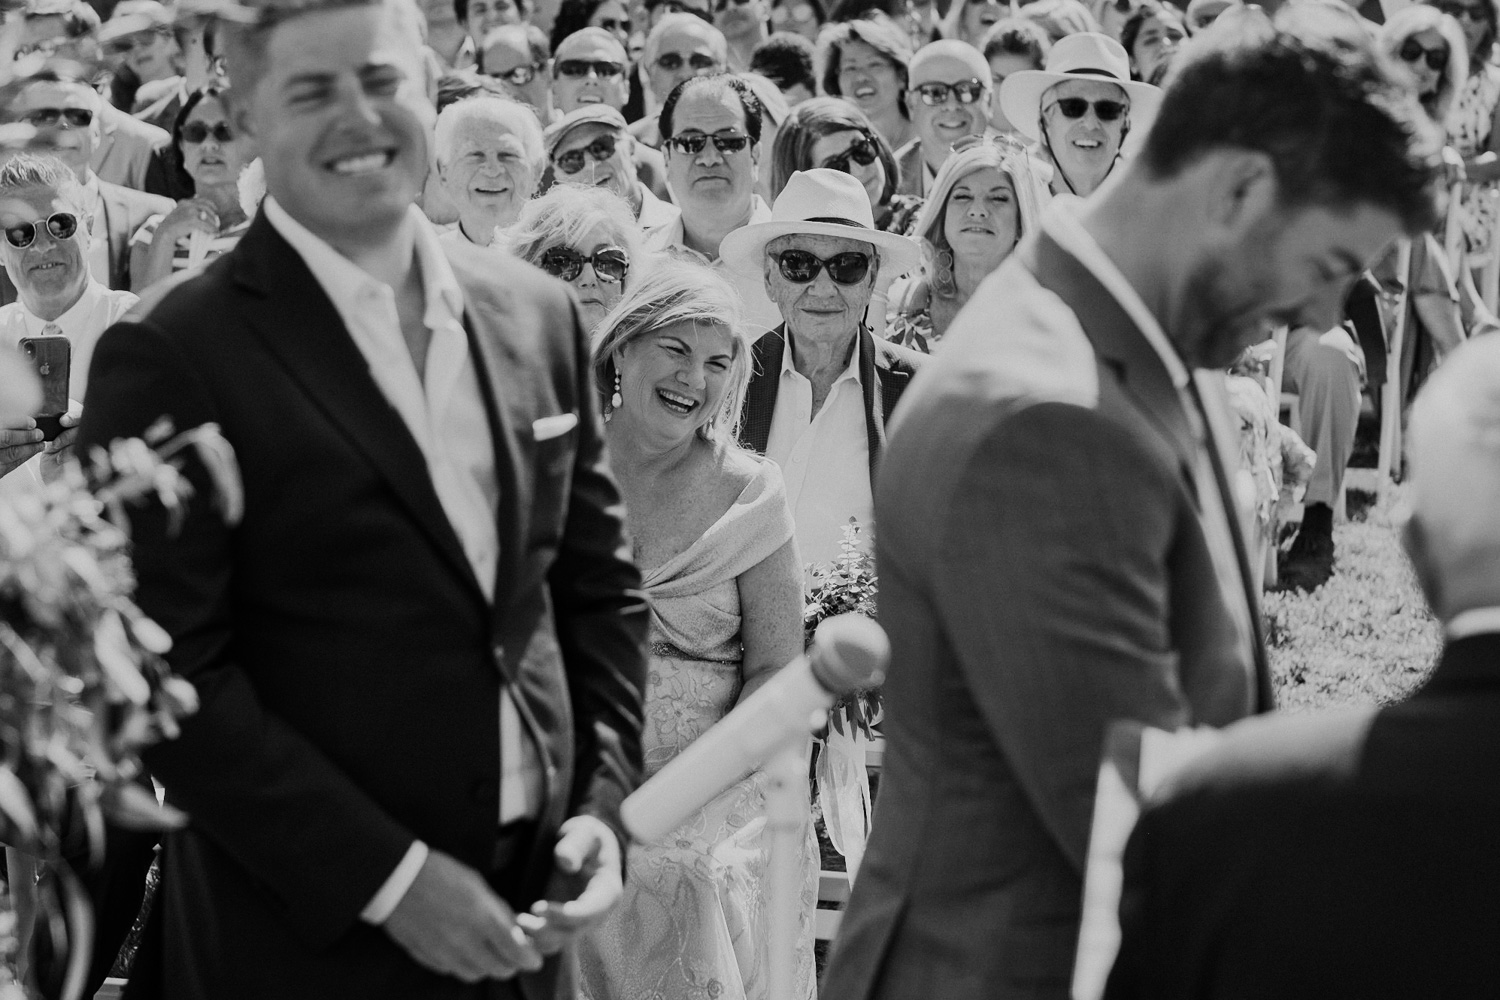 Groom's mother smiles as she watches her son get married during the vows